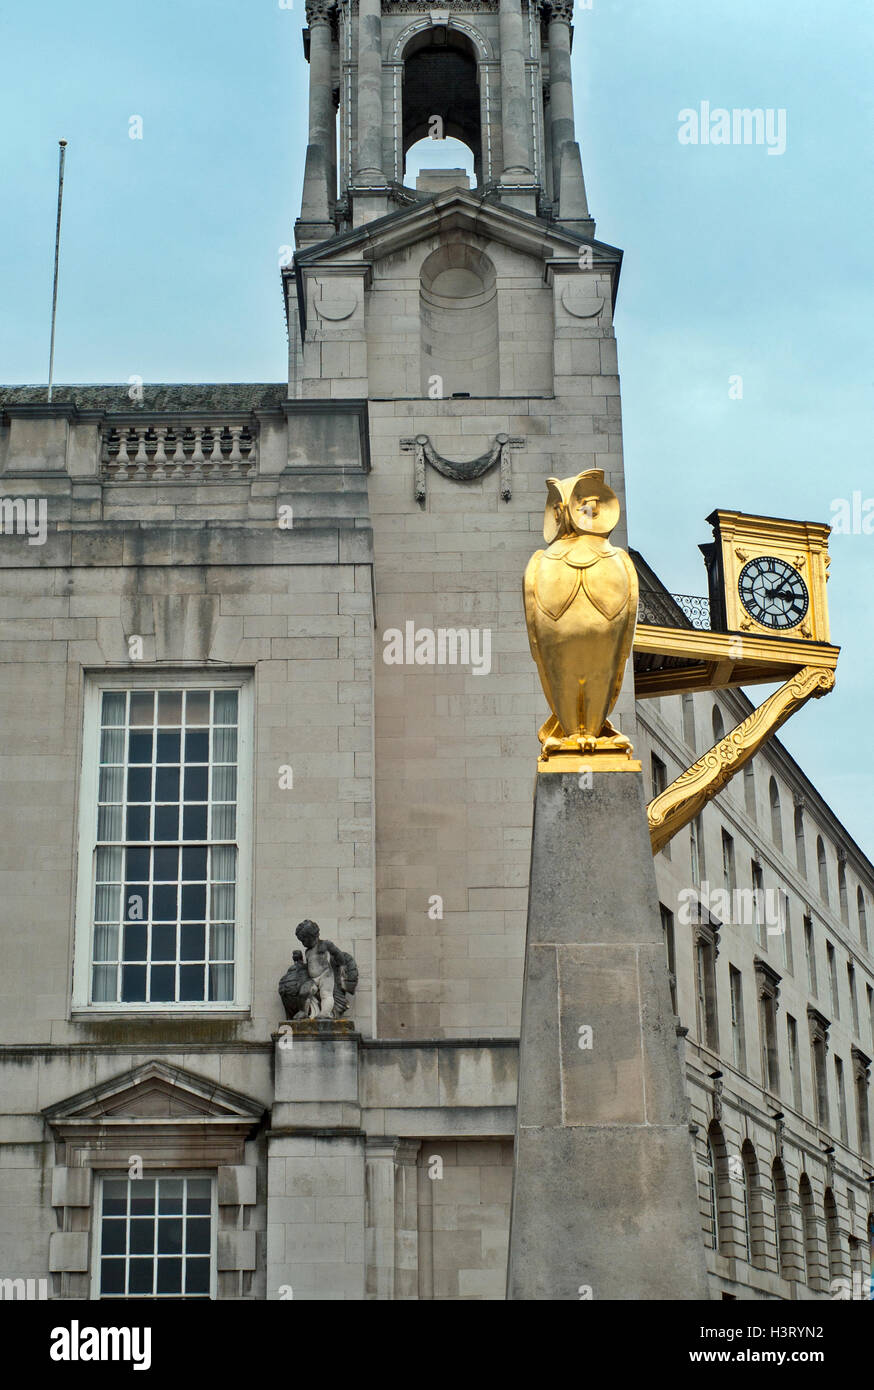 Leeds golden Owl, and Clock by the Civic Hall Tower, Leeds West Yorkshire UK - Stock Image